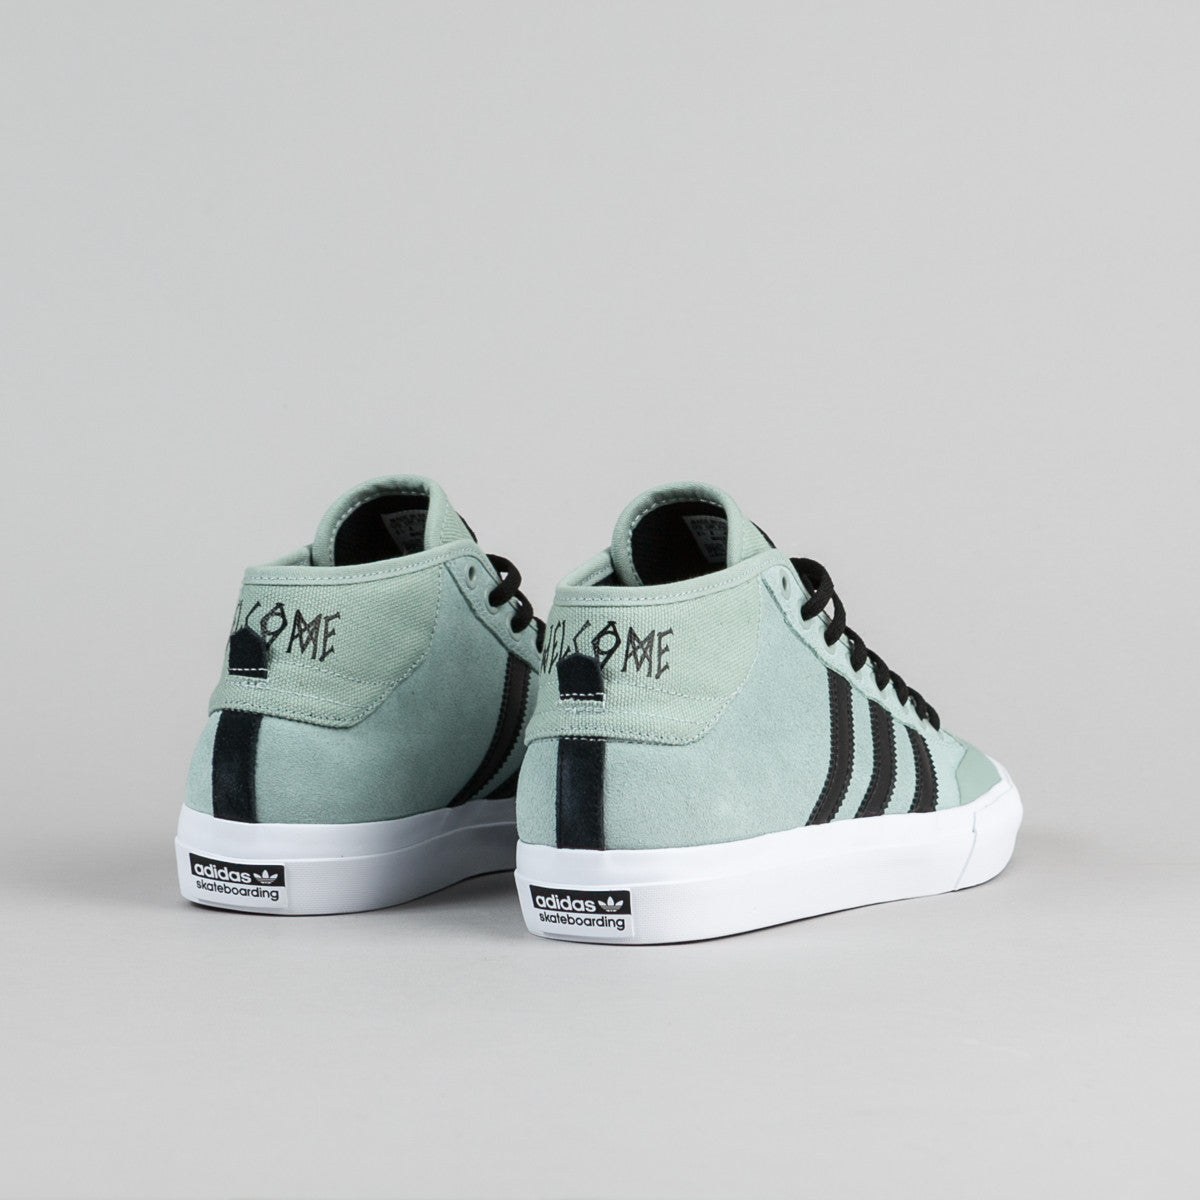 Adidas X Welcome Skateboards Matchcourt Mid Shoes